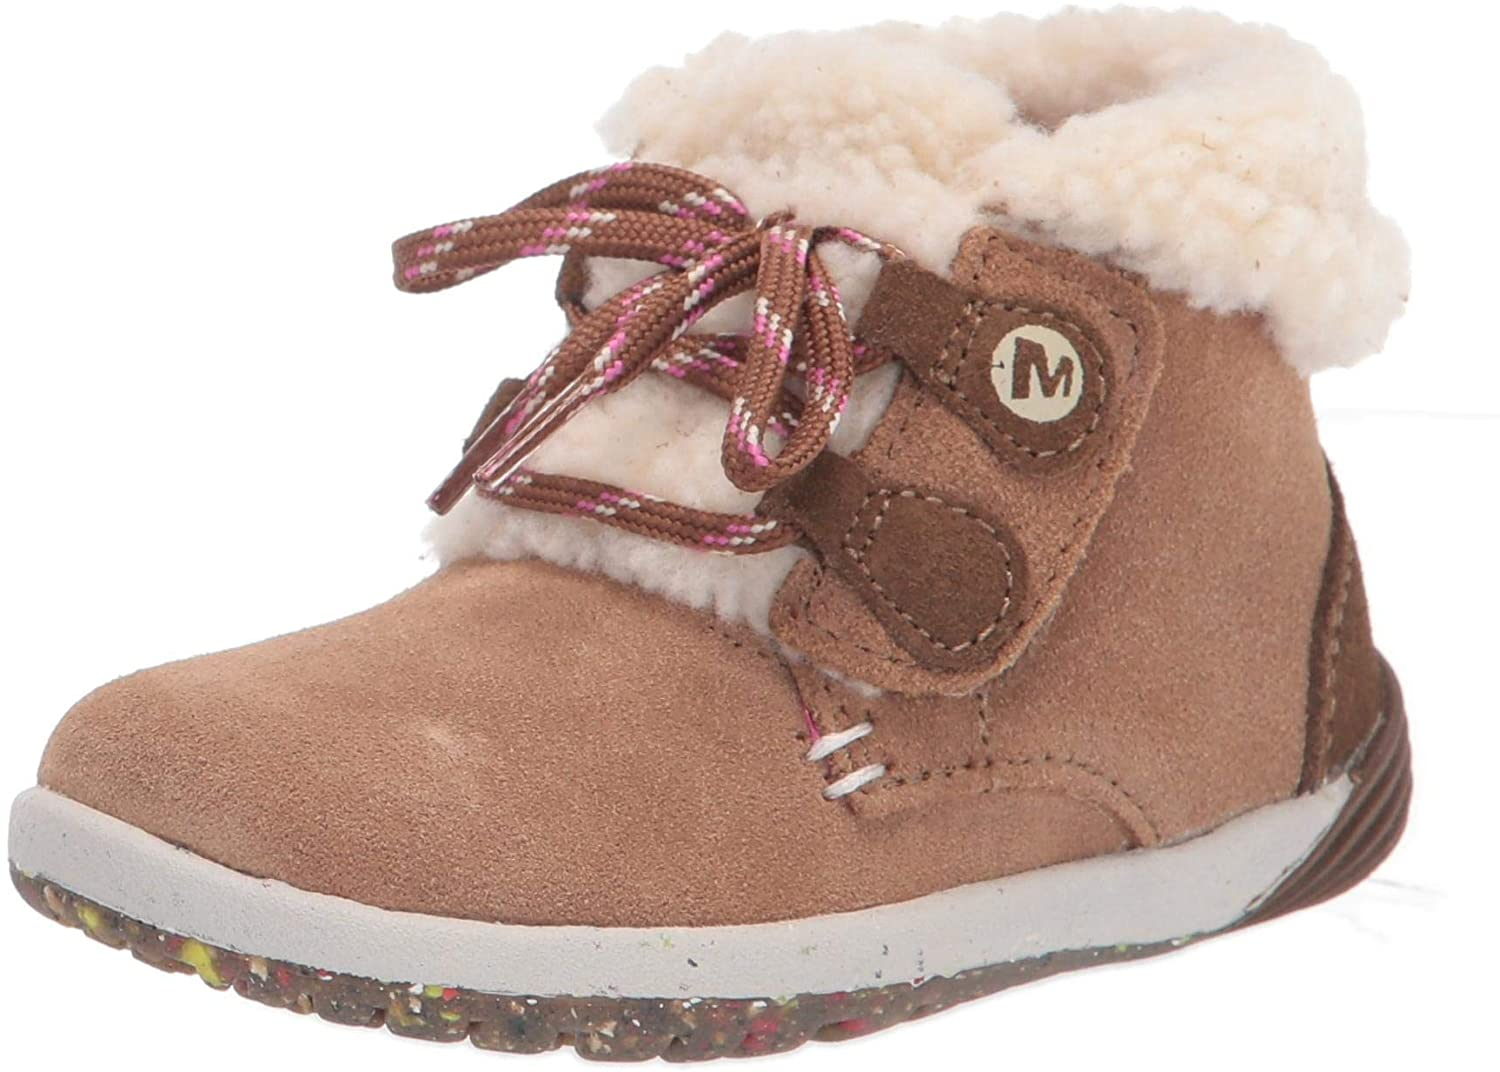 Merrell Outlet sale feature Year-end gift Unisex-Child Bare Steps Cocoa Boot Fashion